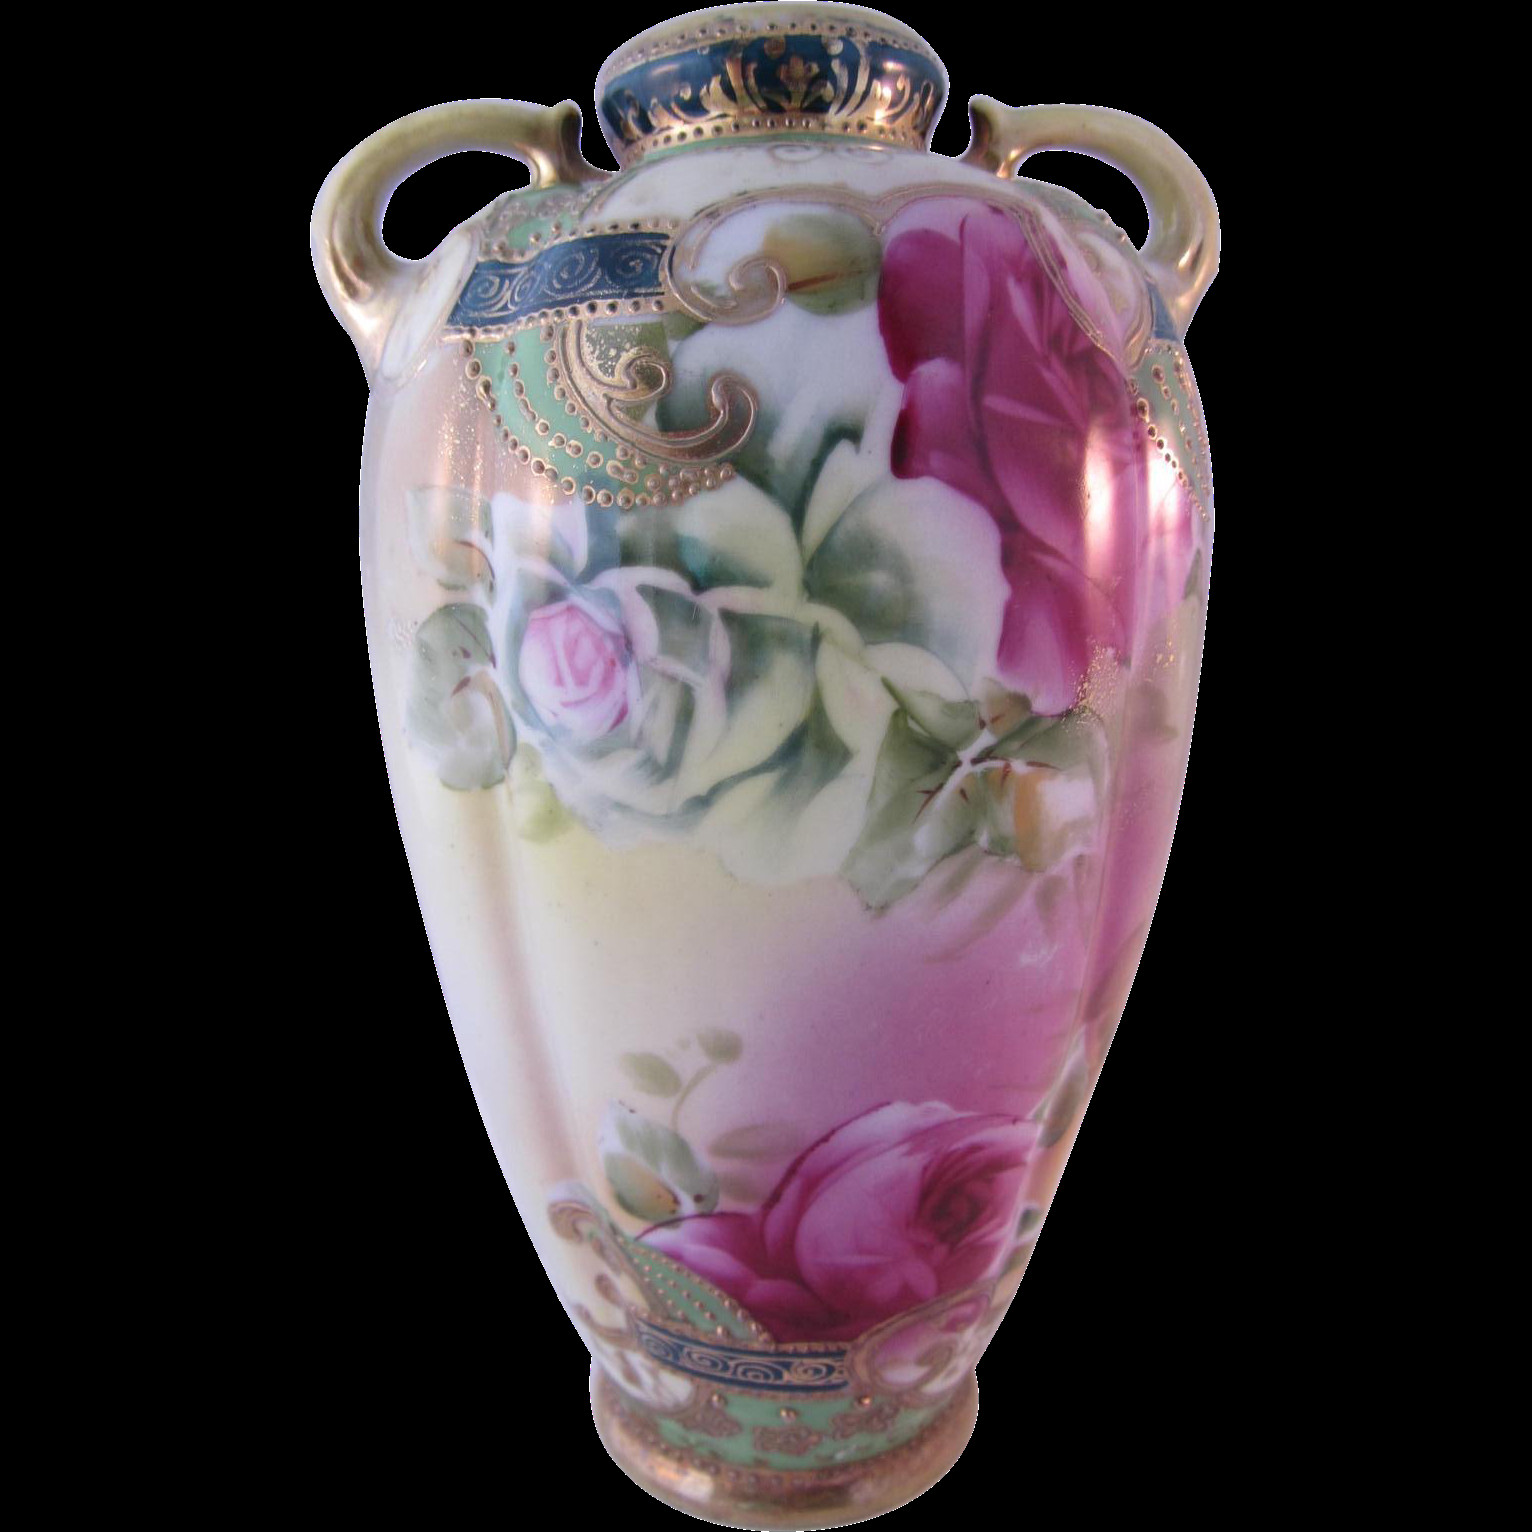 royal nippon hand painted vase of small antique nippon hand painted rose vase 8 5tall from bwhome on with small antique nippon hand painted rose vase 8 5tall from bwhome on ruby lane